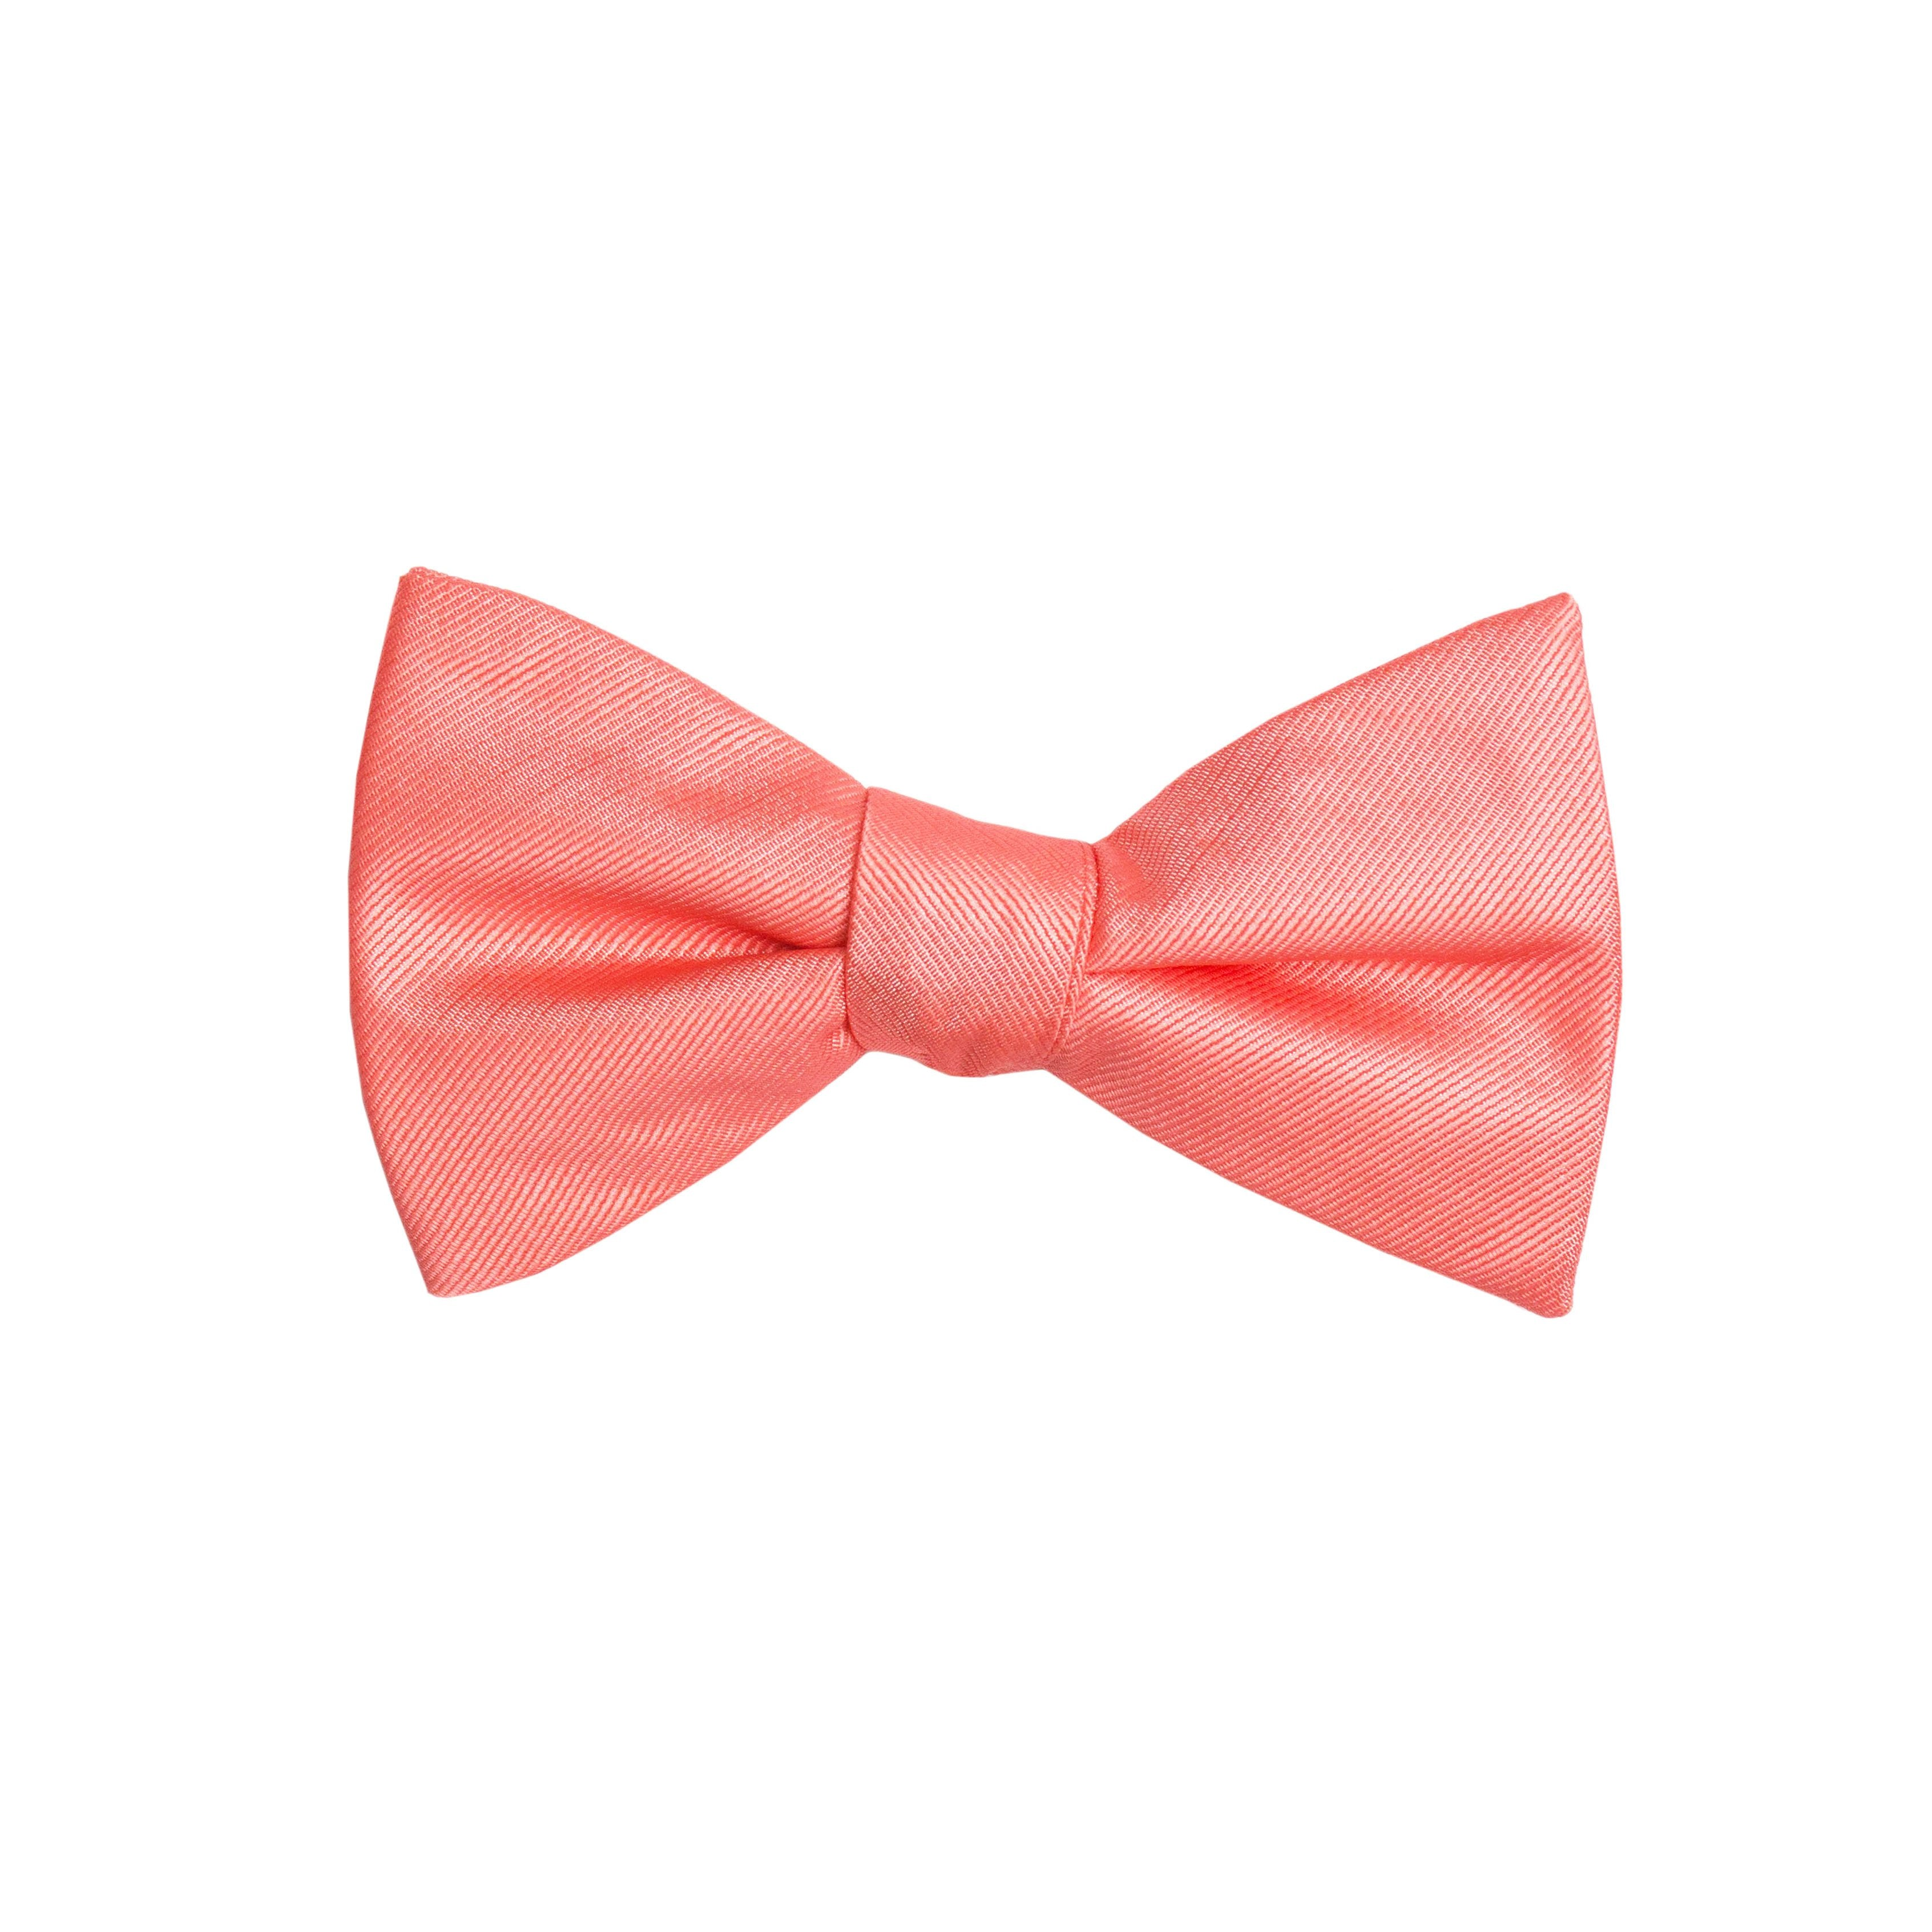 Solid Coral Bow Tie (Pre-tied) (Wall Street)